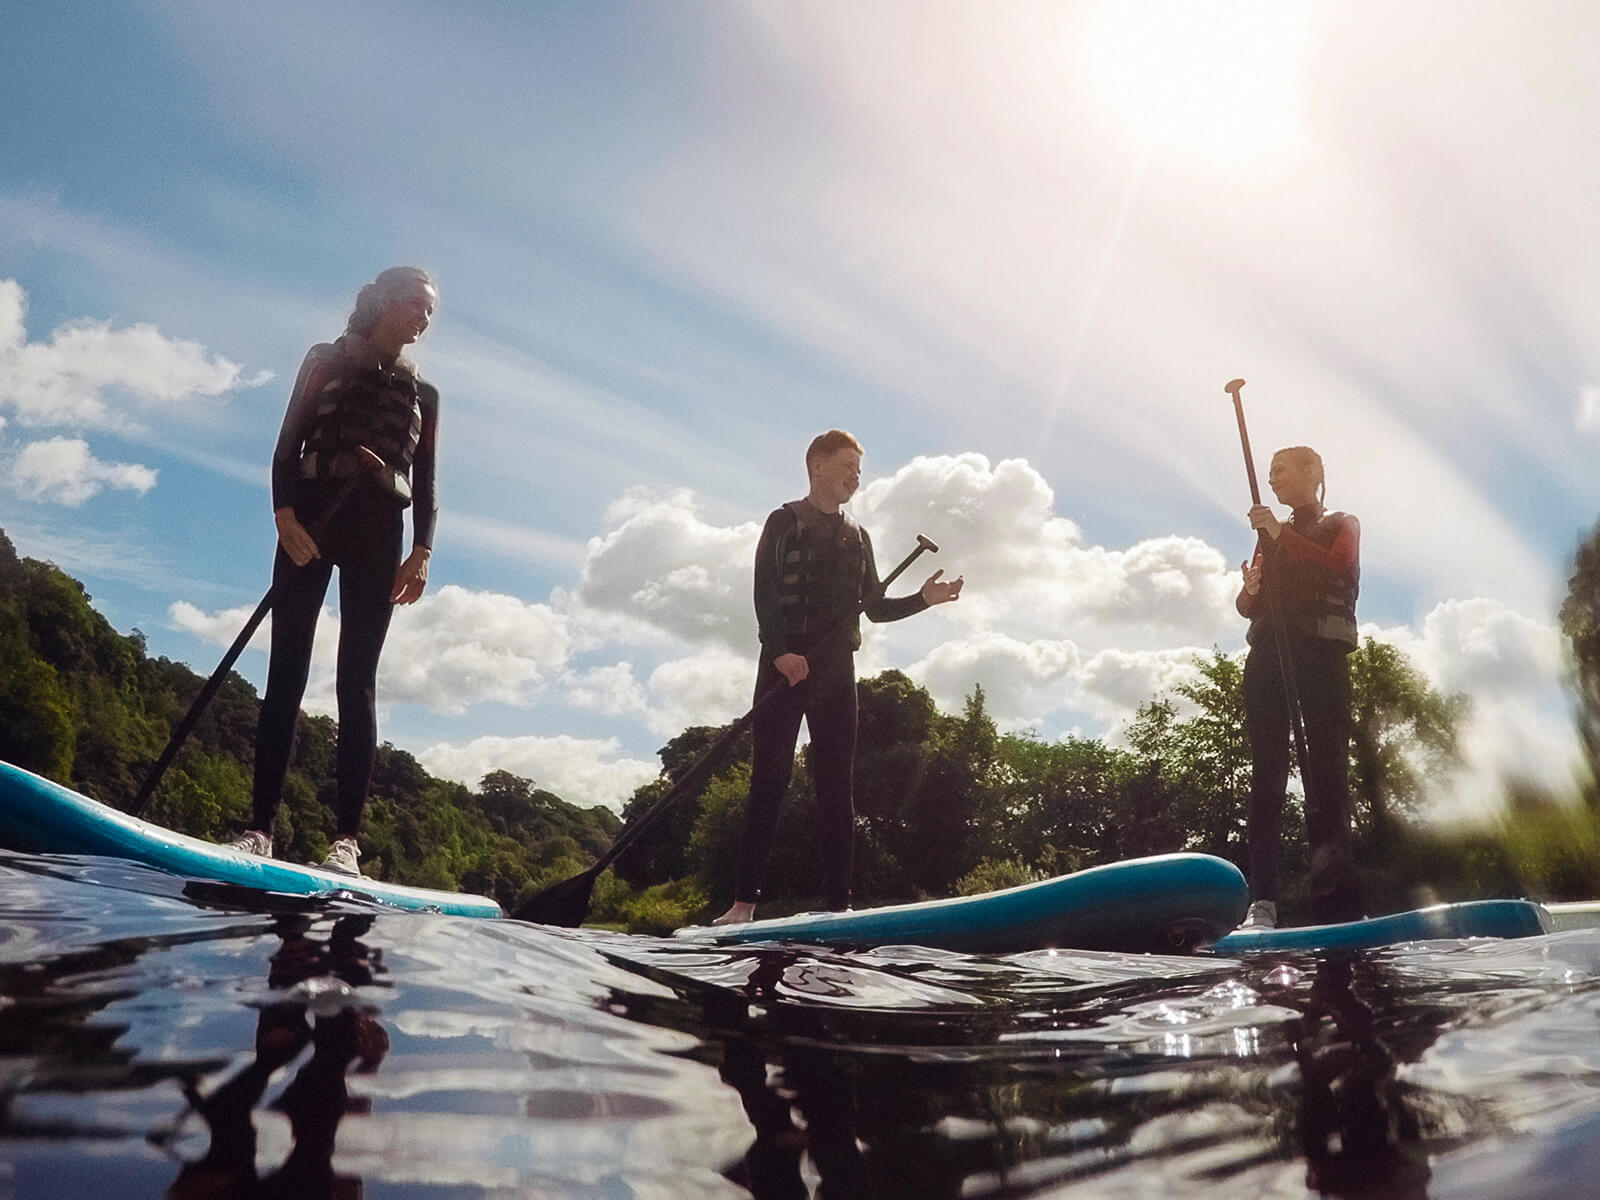 Stand-up paddleboarding group on lake